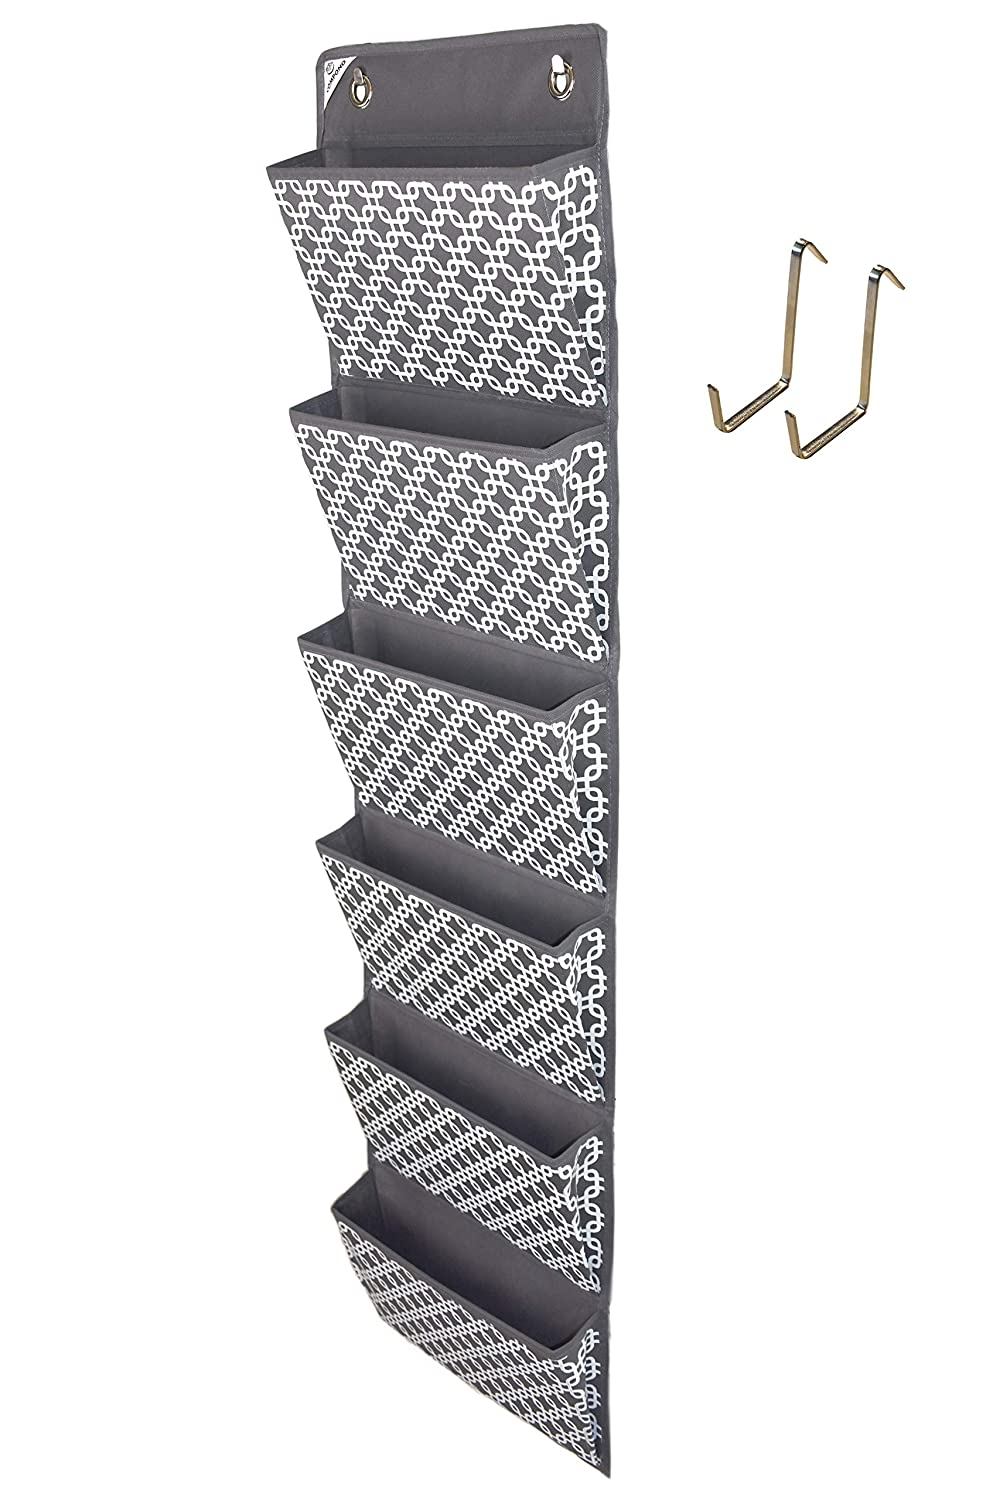 COMPONO Over The Door Hanging File Organizer Wall Mounted, Office Supplies Storage Holder Pocket Chart for Magazine, Notebooks, Planners, File Folders, 6 Large Pockets (Trellis Pattern)